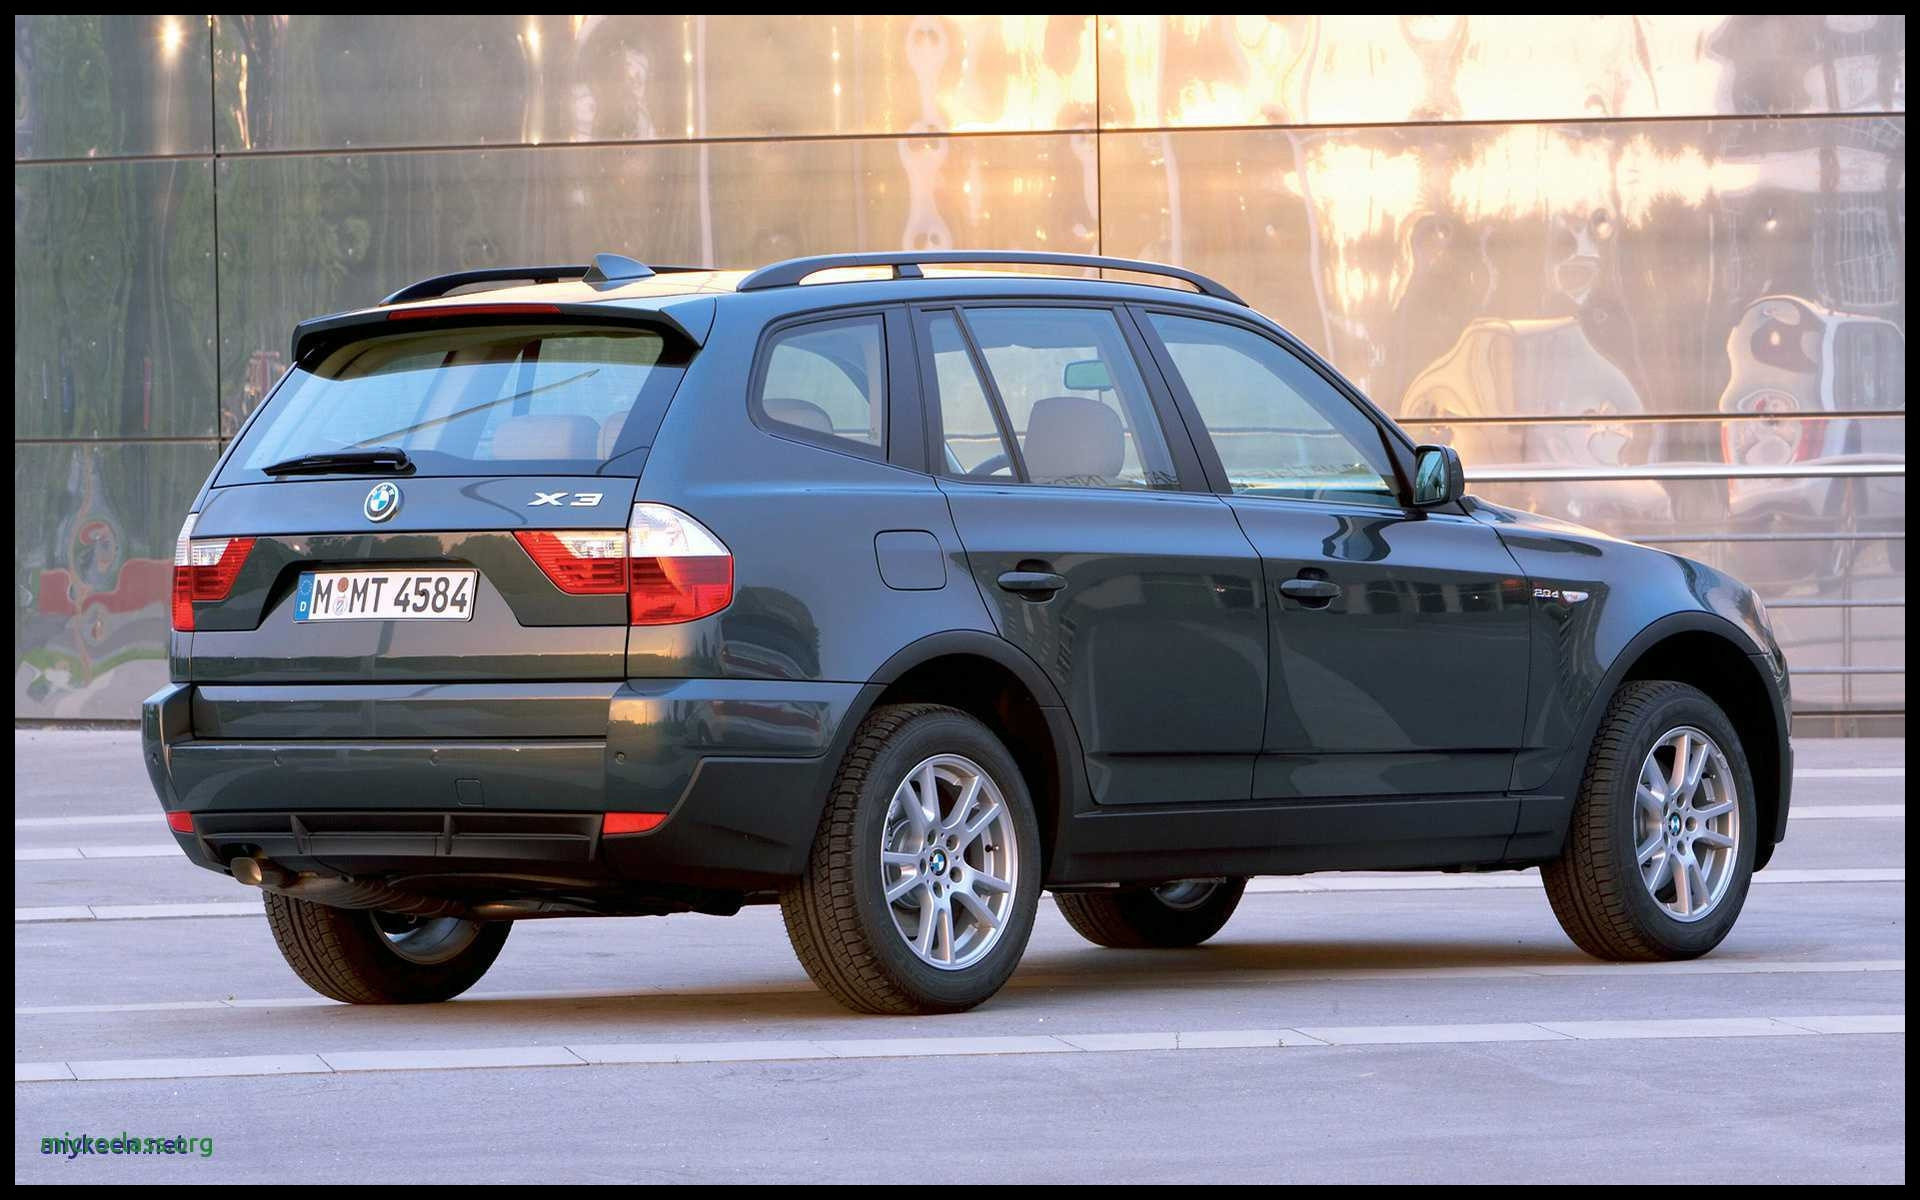 Bmw Wallpaper Luxury Bmw X3 2 0d 2007 Wallpapers And Hd Car Pixel Cool Car Tyre Wallpaper